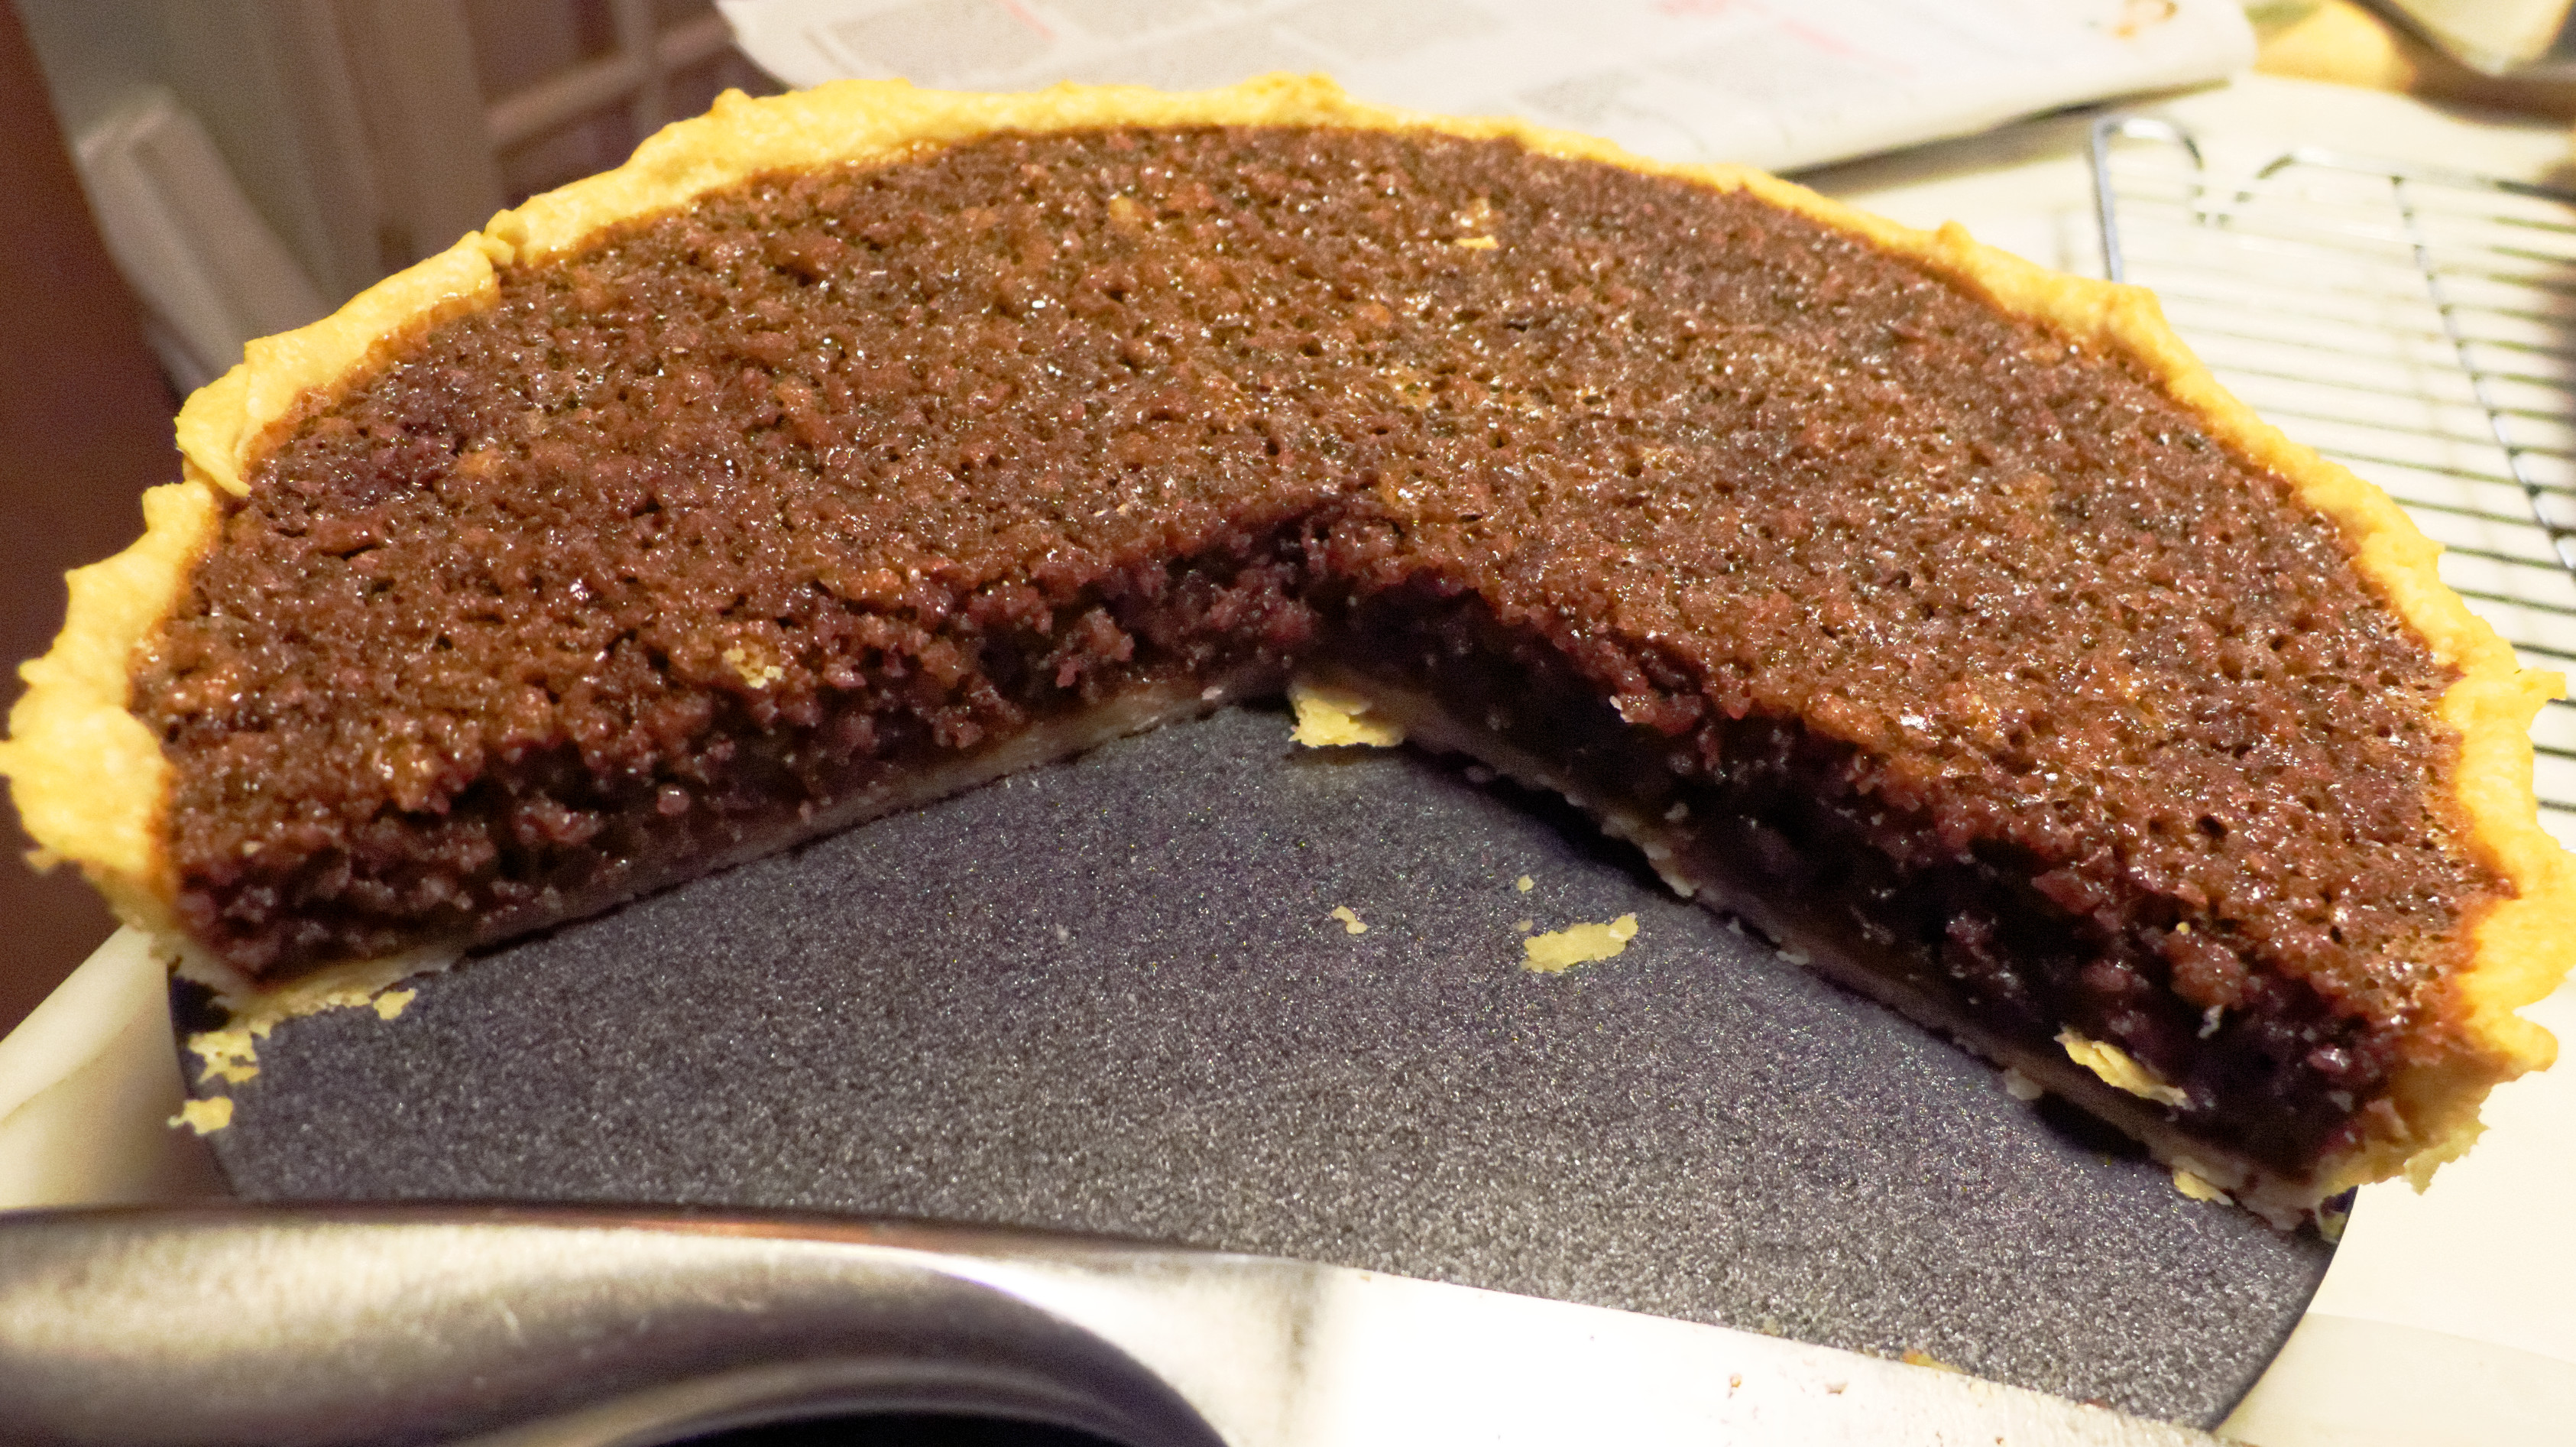 Treacle tart, with sourdough breadcrumbs and treacle